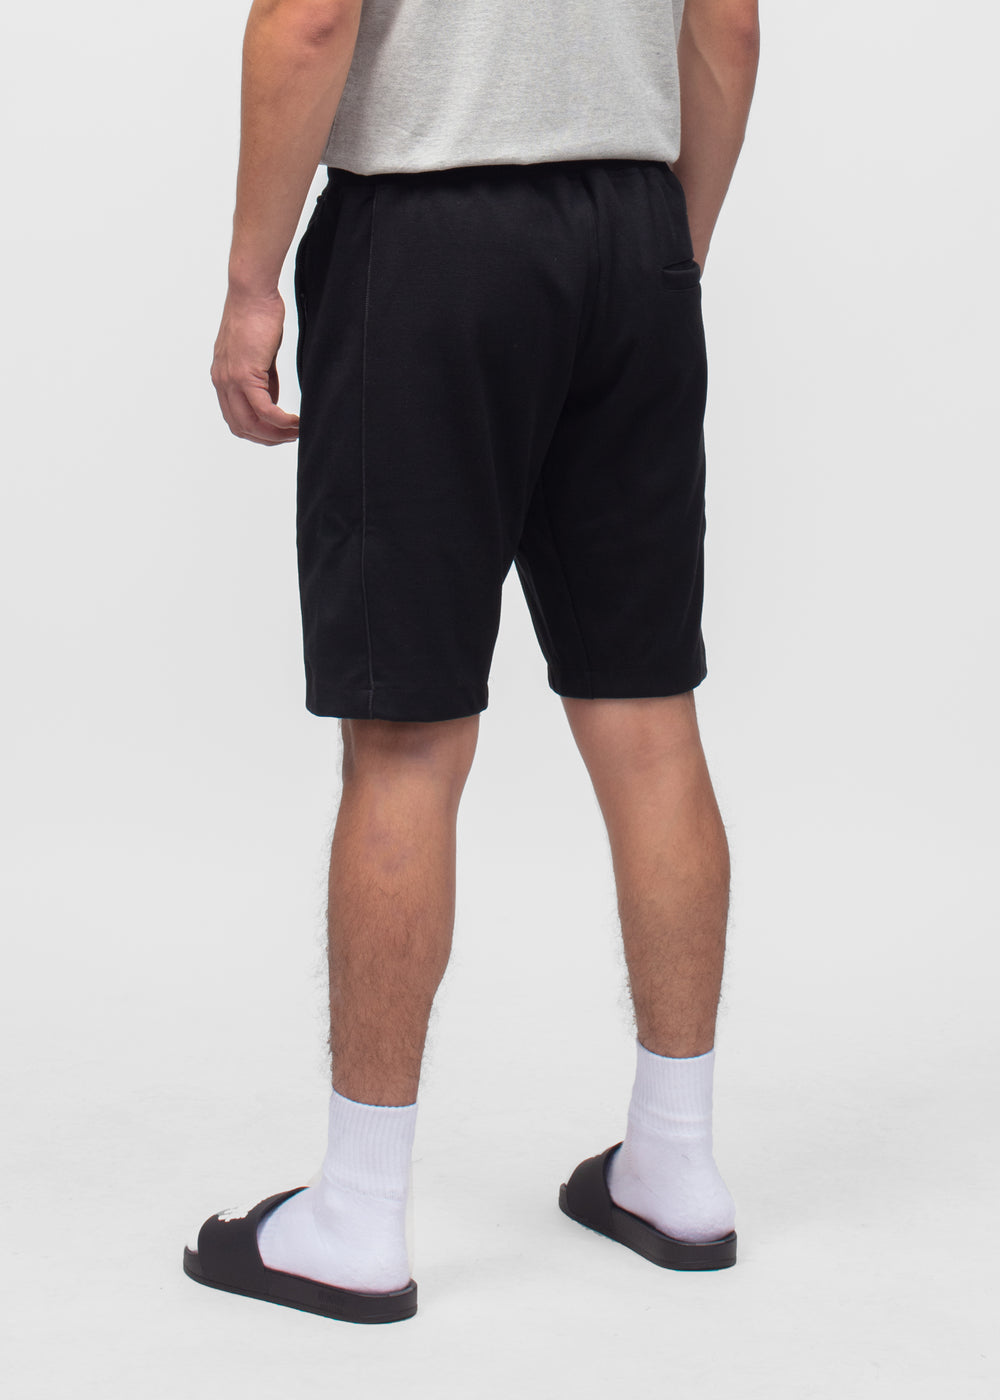 billionaire-boys-club-straight-font-shorts-891-6100-blk-blk-3